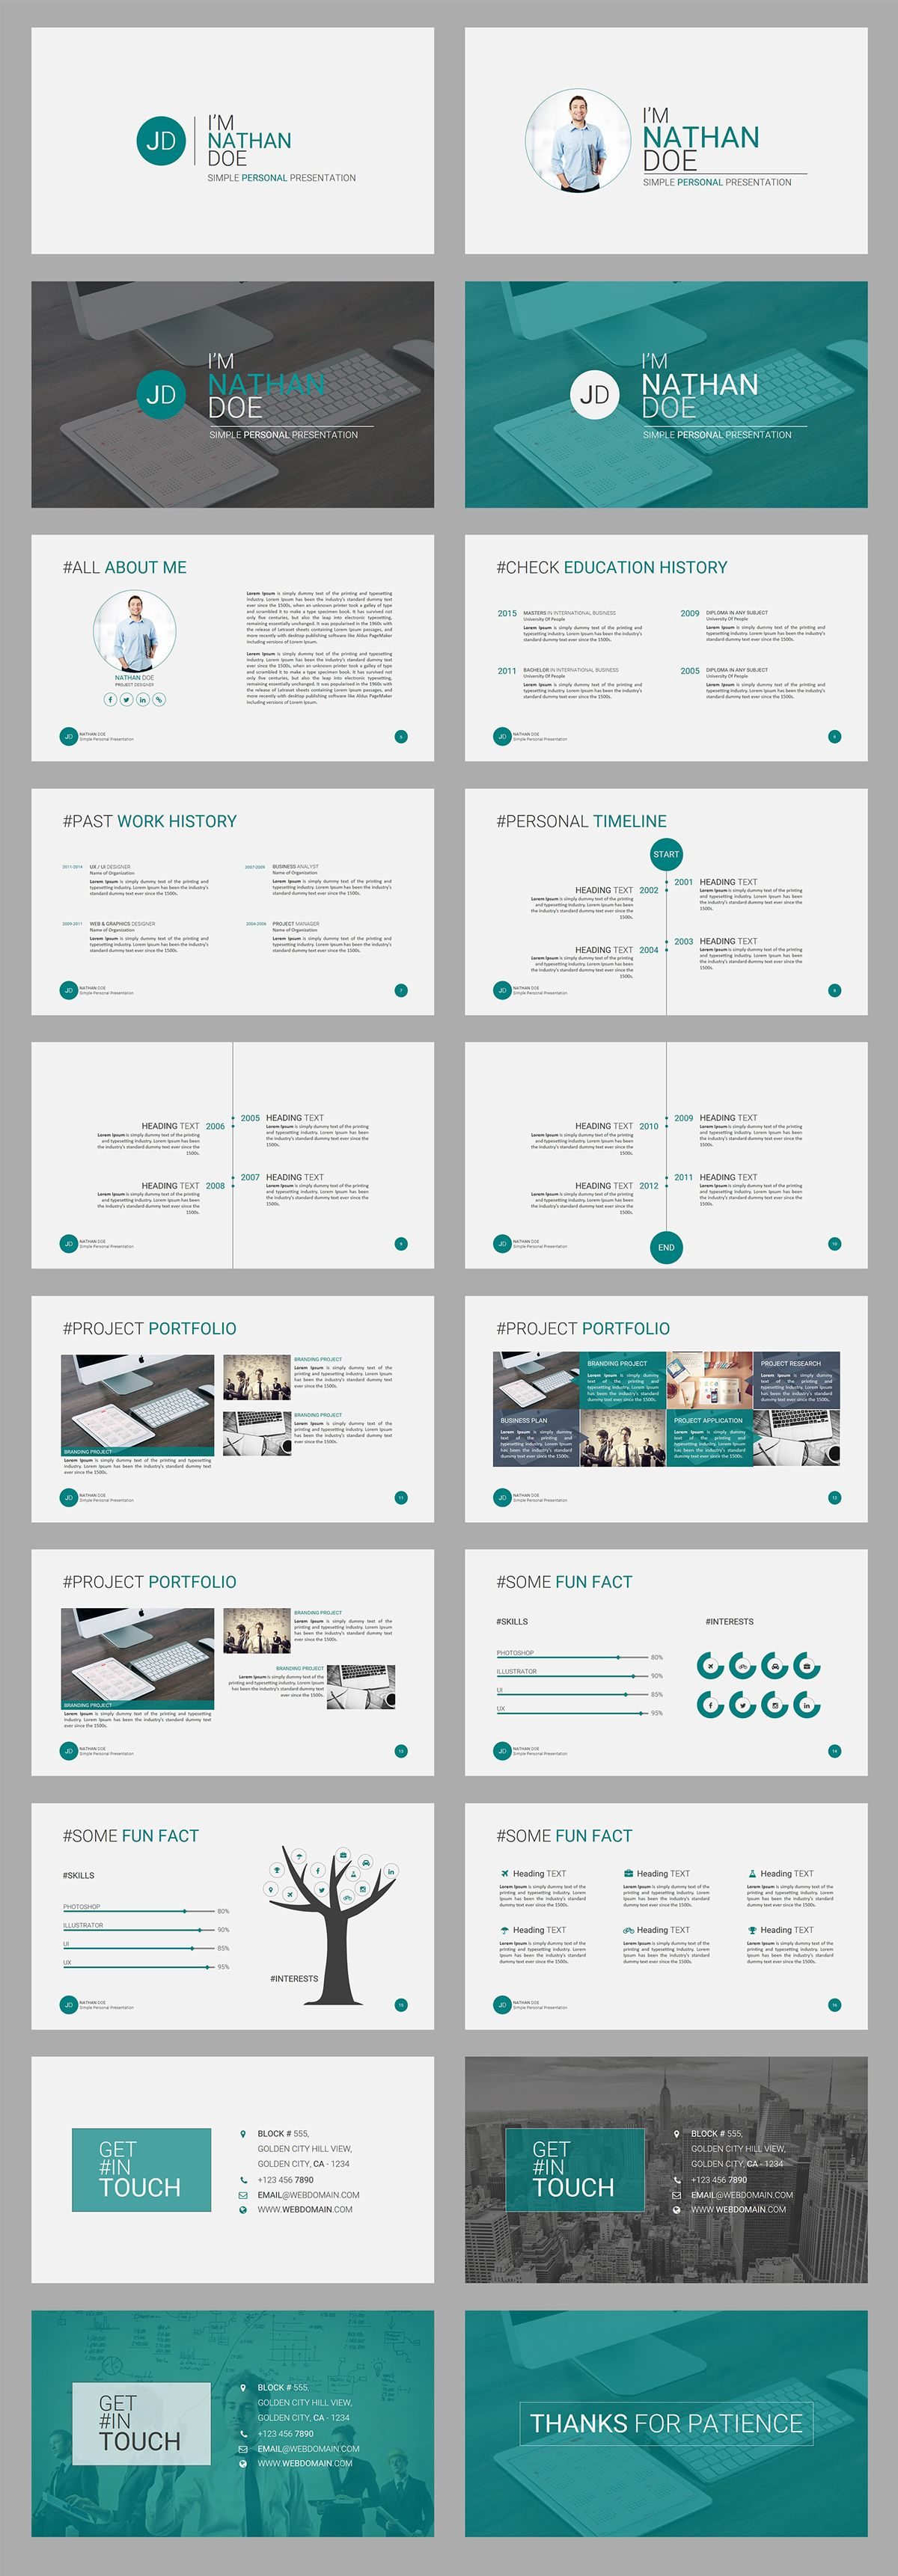 Jd Personal Powerpoint Presentation Template On Behance Presentation Template Free Powerpoint Presentation Presentation